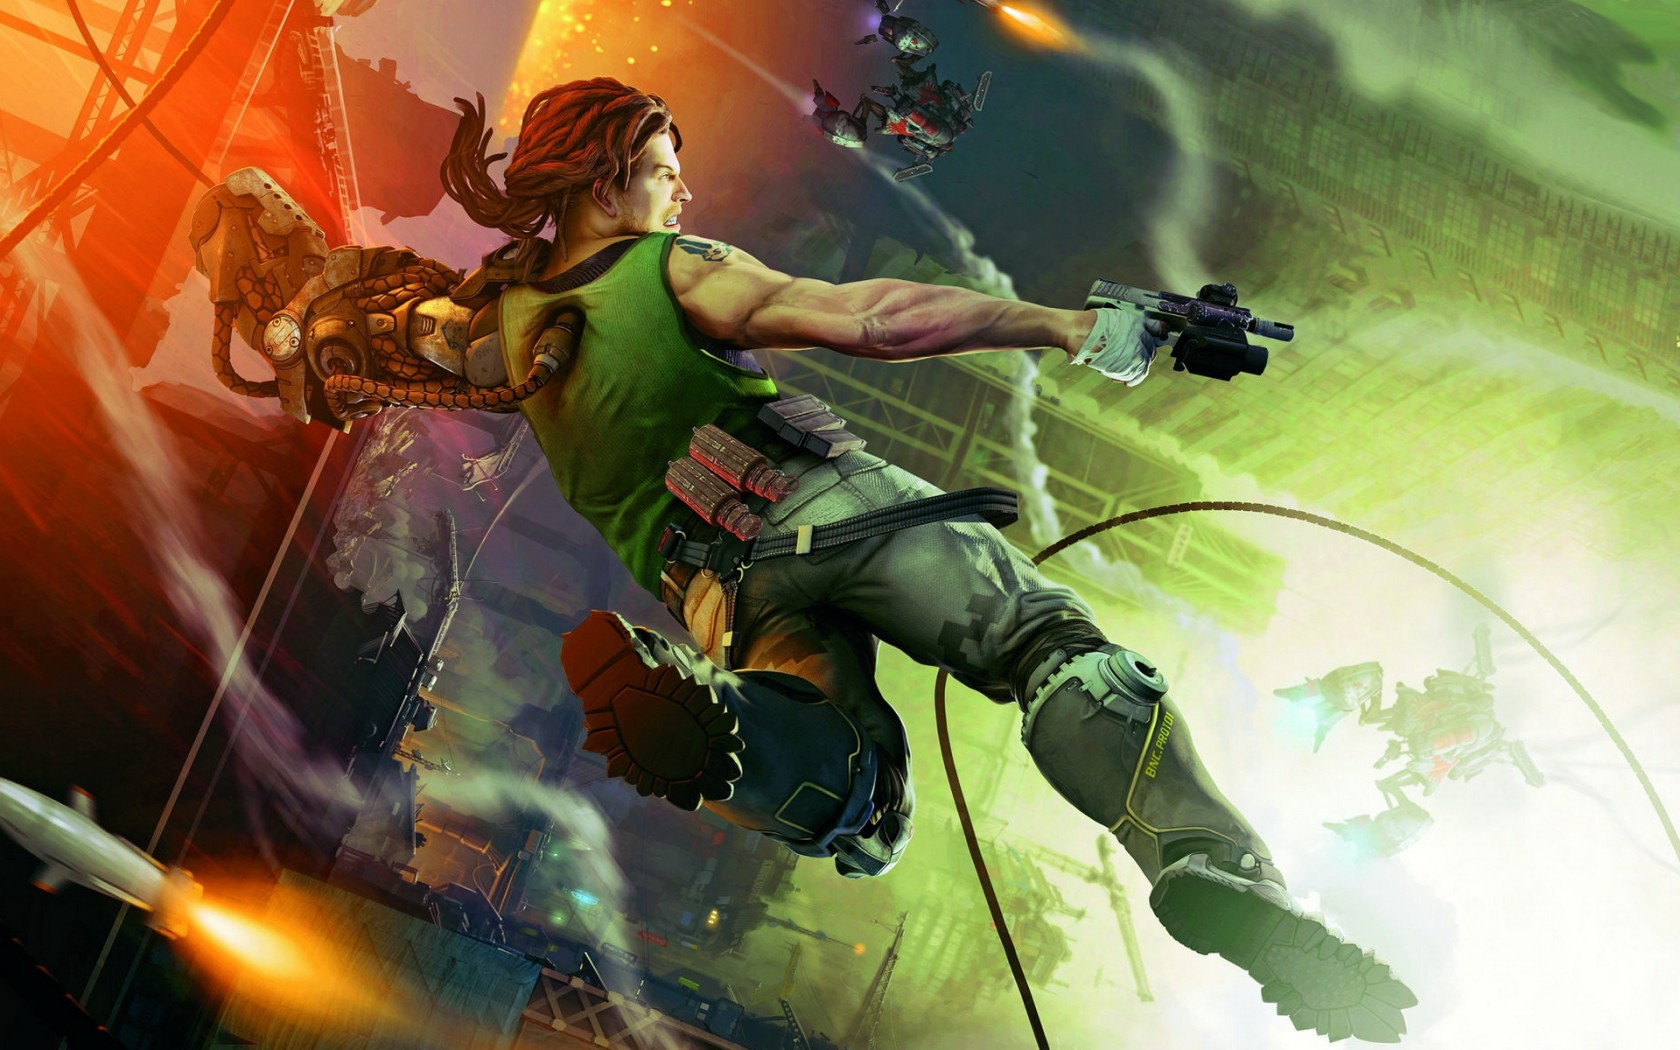 Hd Cute Wallpapers 1080p Bionic Commando 3 Wallpapers Hd Wallpapers Id 9666